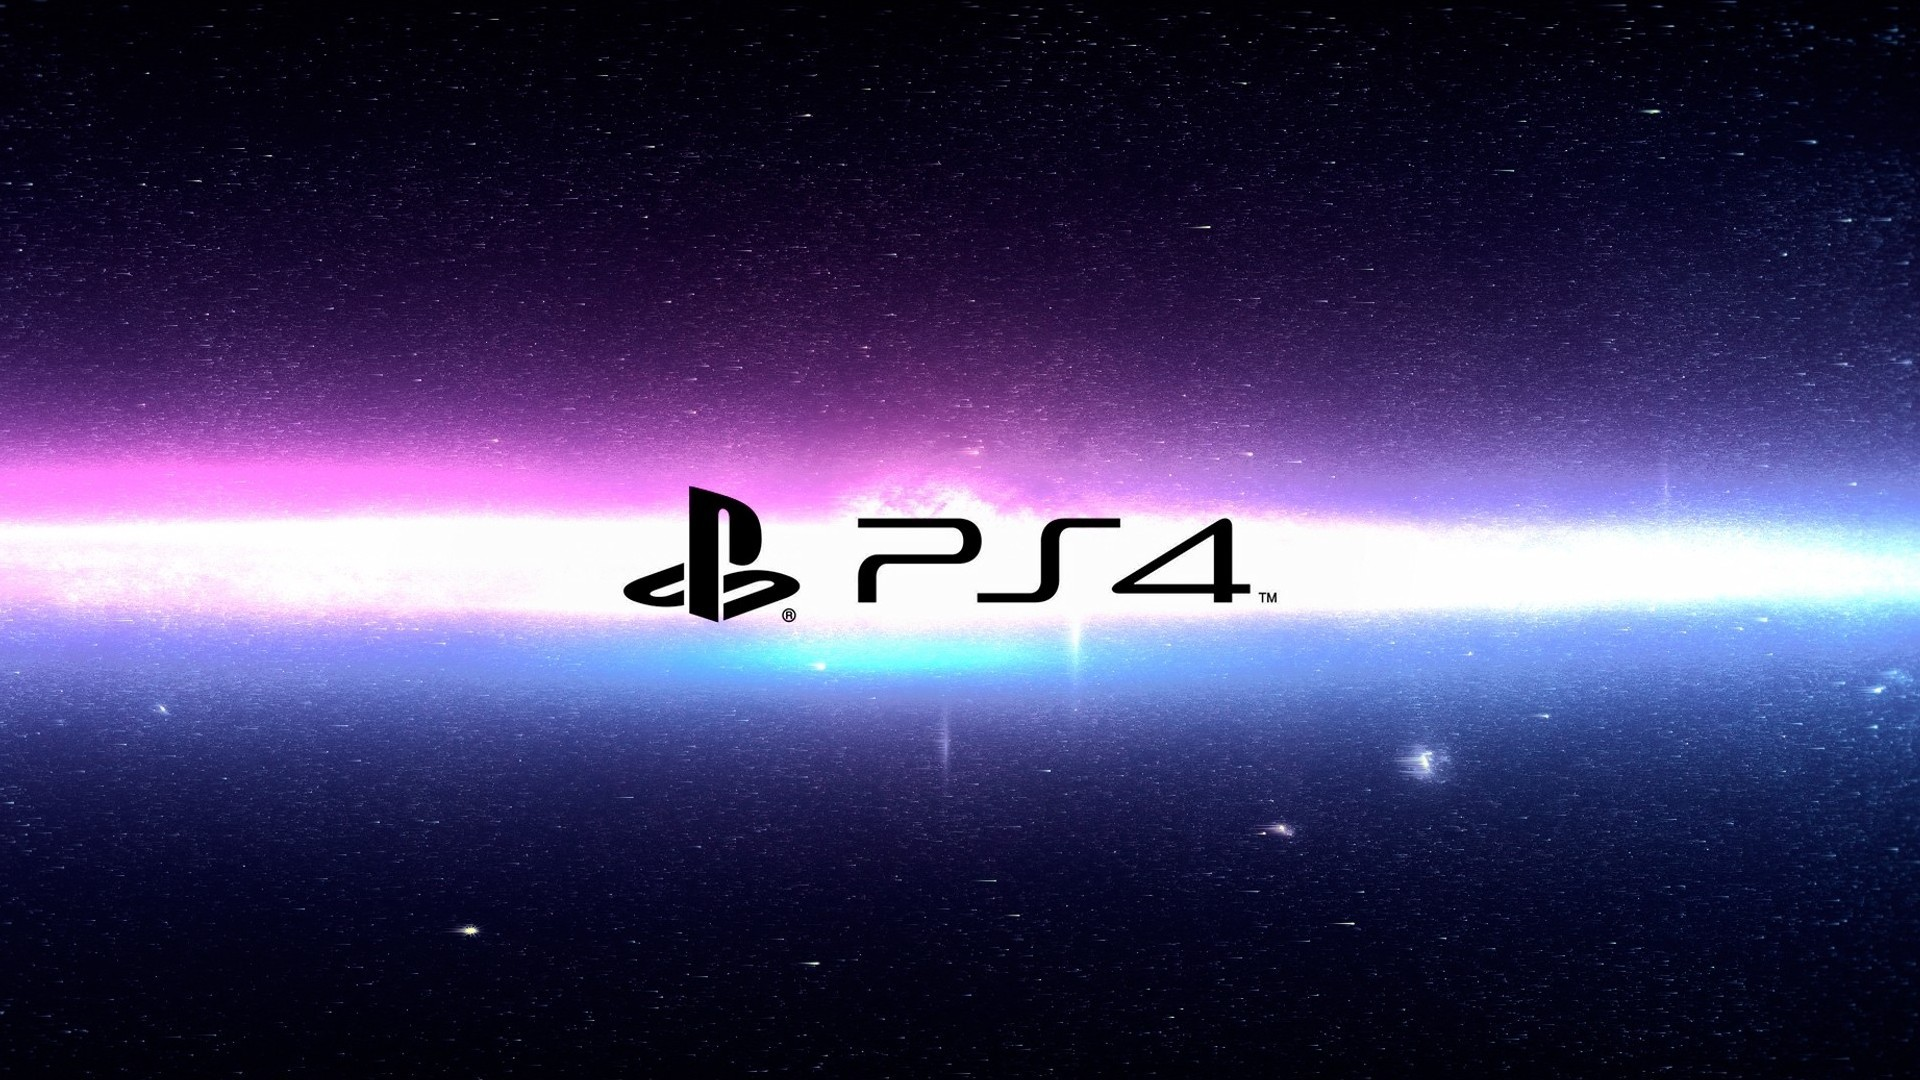 Free Download Sony Playstation 4 Wallpapers Pictures Images 1920x1080 For Your Desktop Mobile Tablet Explore 37 Playstation Games Wallpapers Playstation Games Wallpapers Playstation Wallpaper Playstation Wallpapers